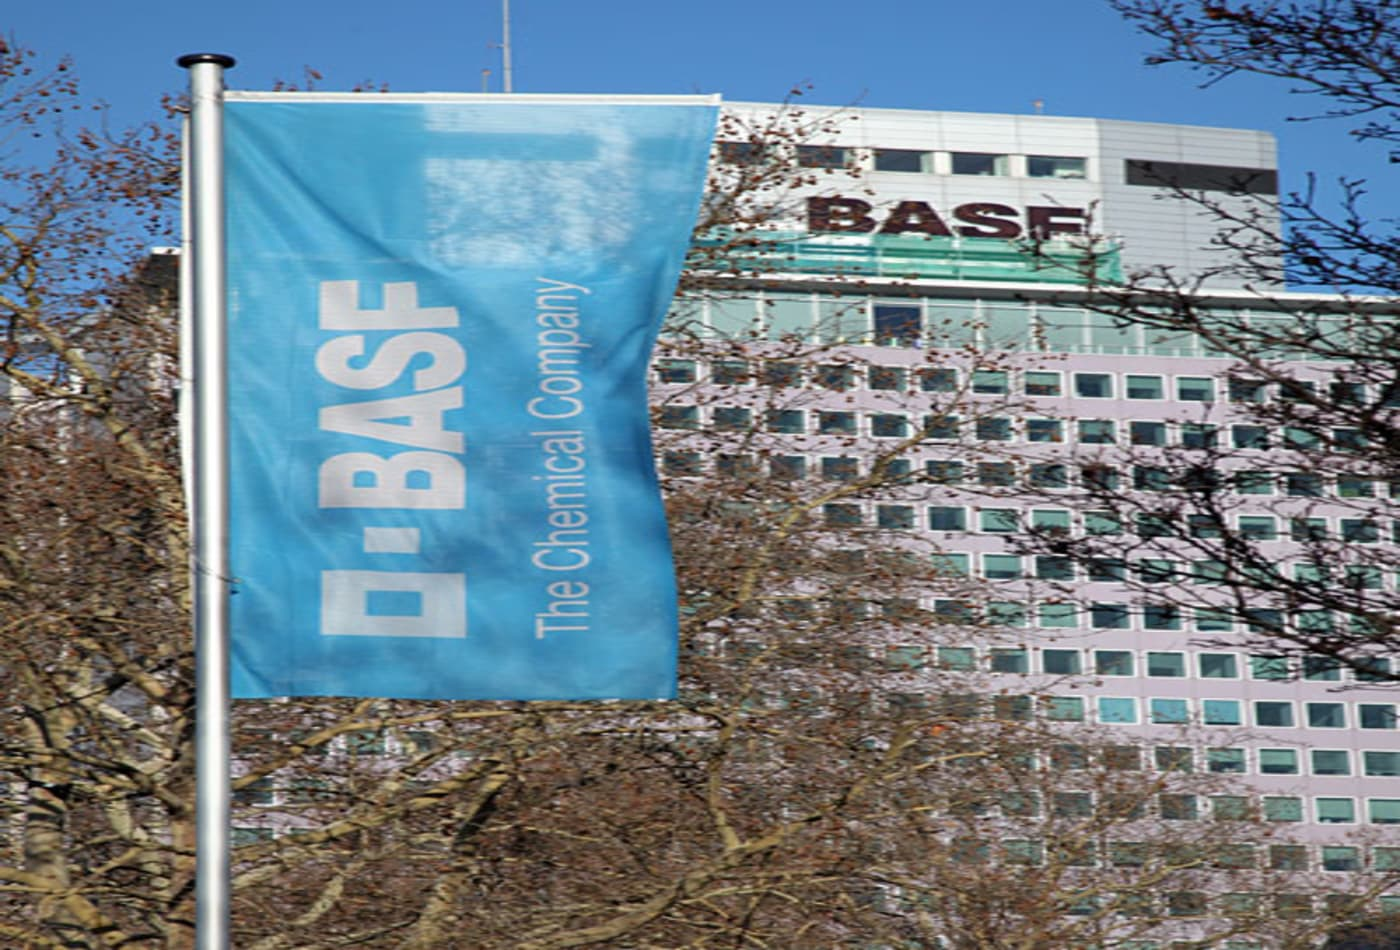 BASF-Happiest-Employees.jpg